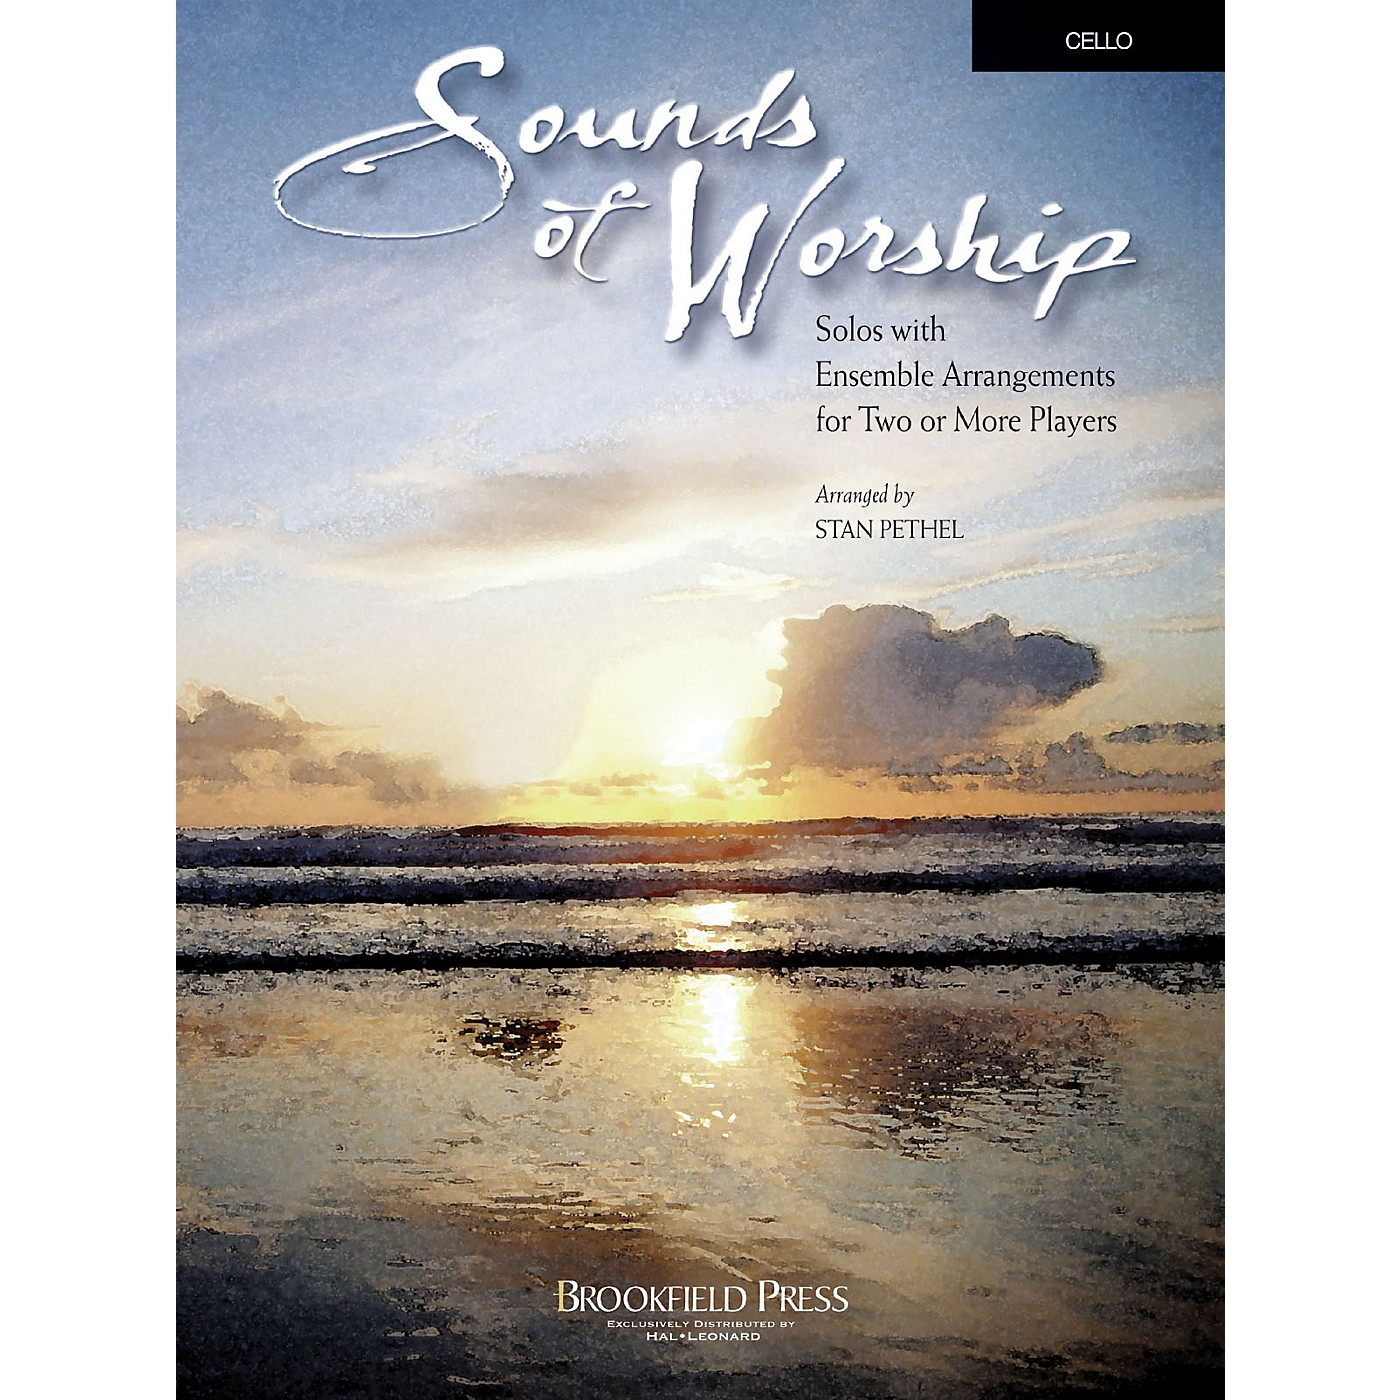 Brookfield Sounds of Worship Cello arranged by Stan Pethel thumbnail